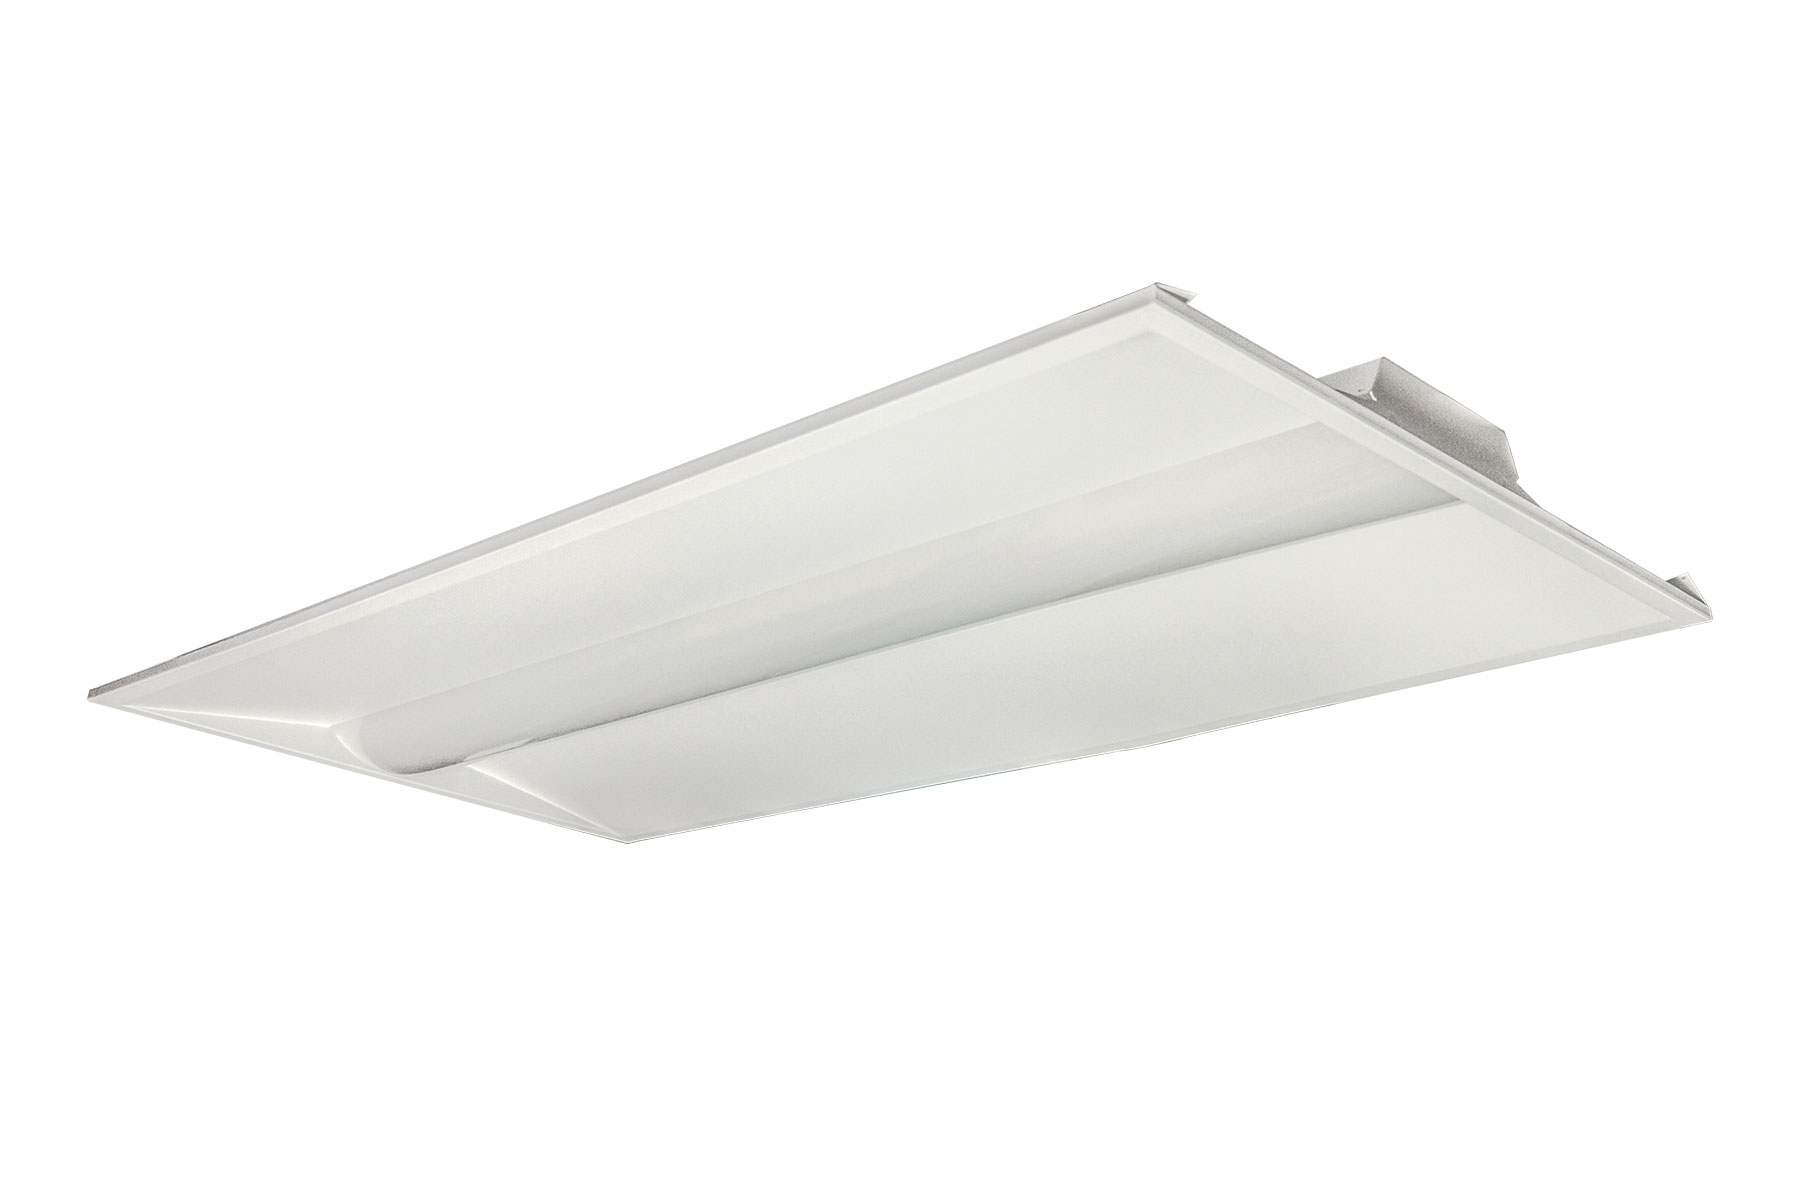 2FTx4FT-CCT-LED-TROFFER